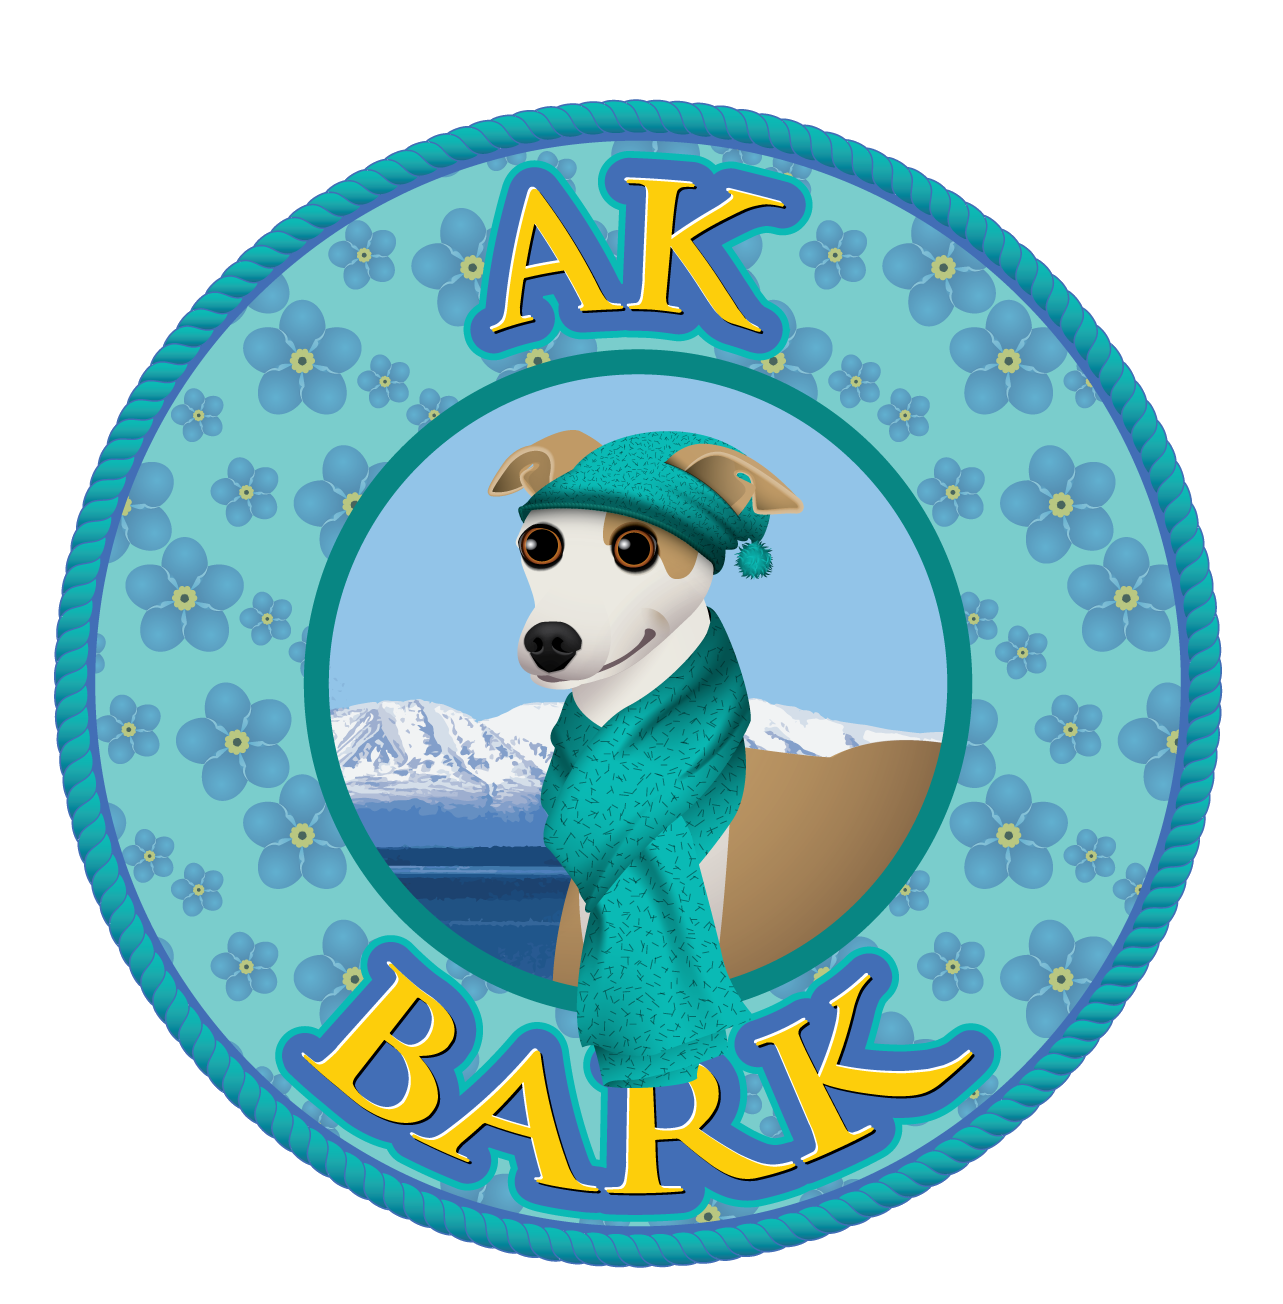 AK Bark Unique Gifts for Pets- People<br>Anchorage, AK